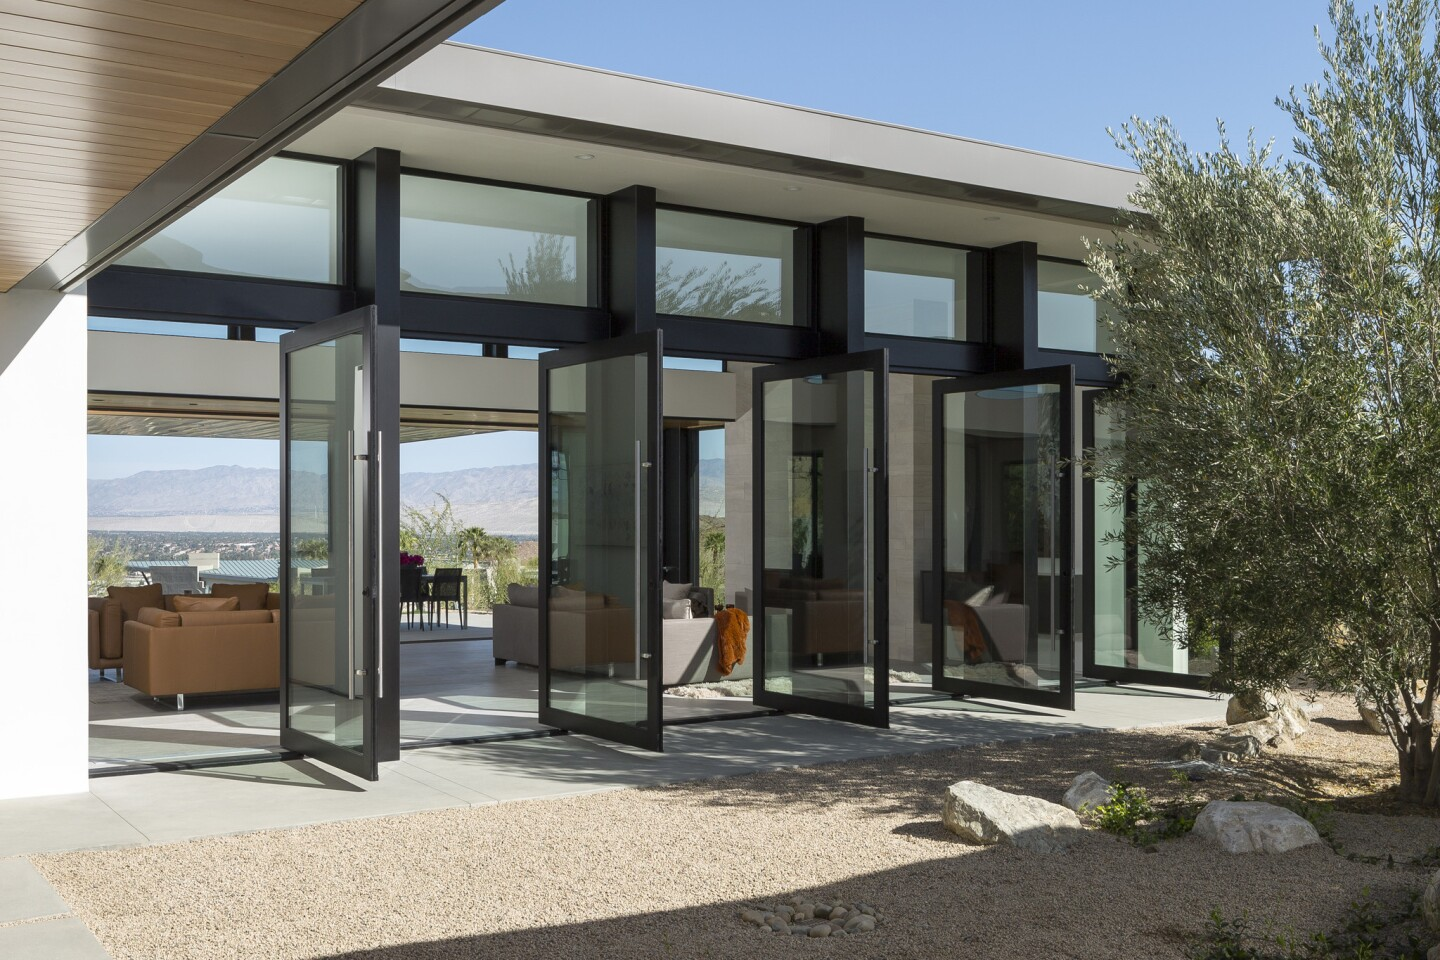 Home of the Day: Modern desert mirage